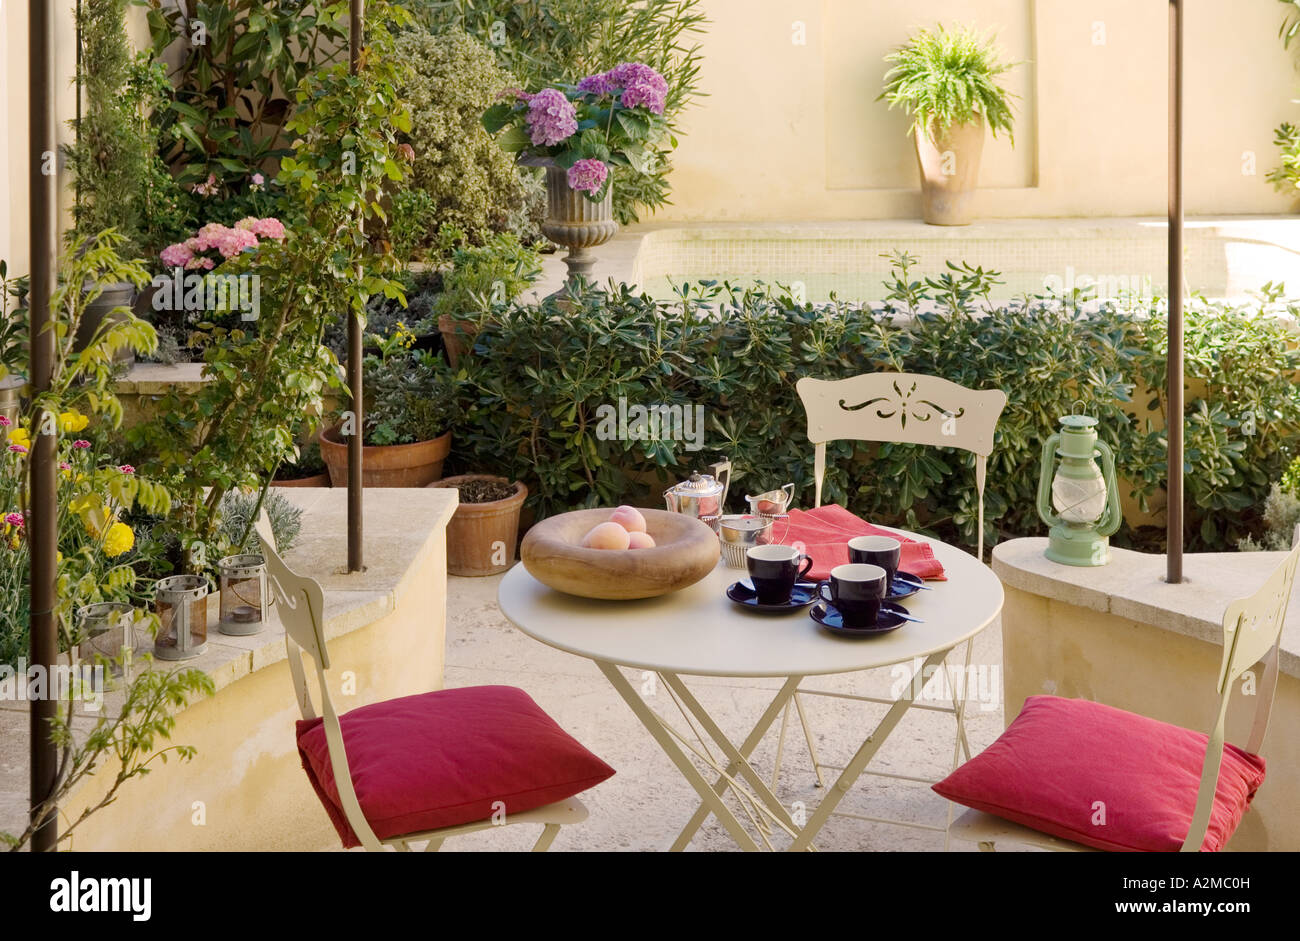 Provence garden courtyard with outdoor furniture - Stock Image